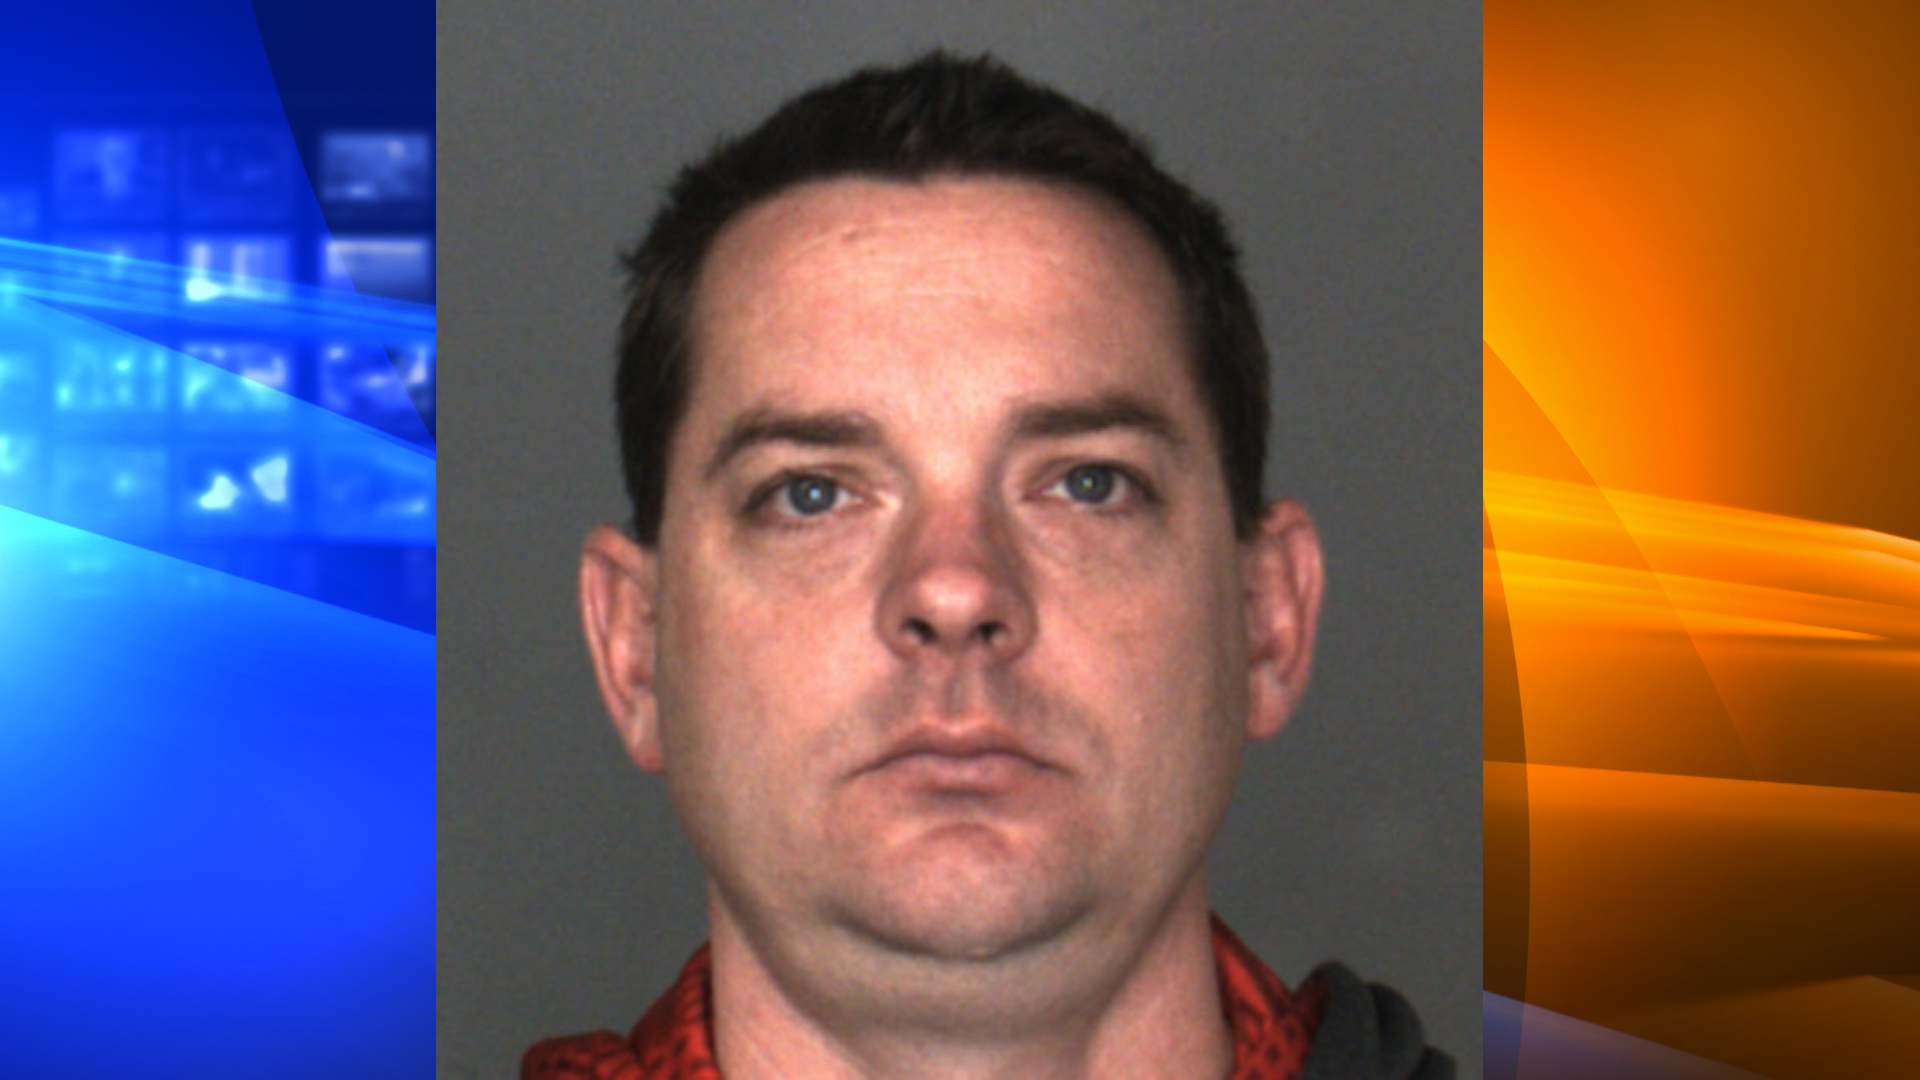 Jason James Bemowski, 38, a sergeant in the Chino Police Department, pictured in a photo released by the Roseville Police Department following his arrest on March 7, 2019.